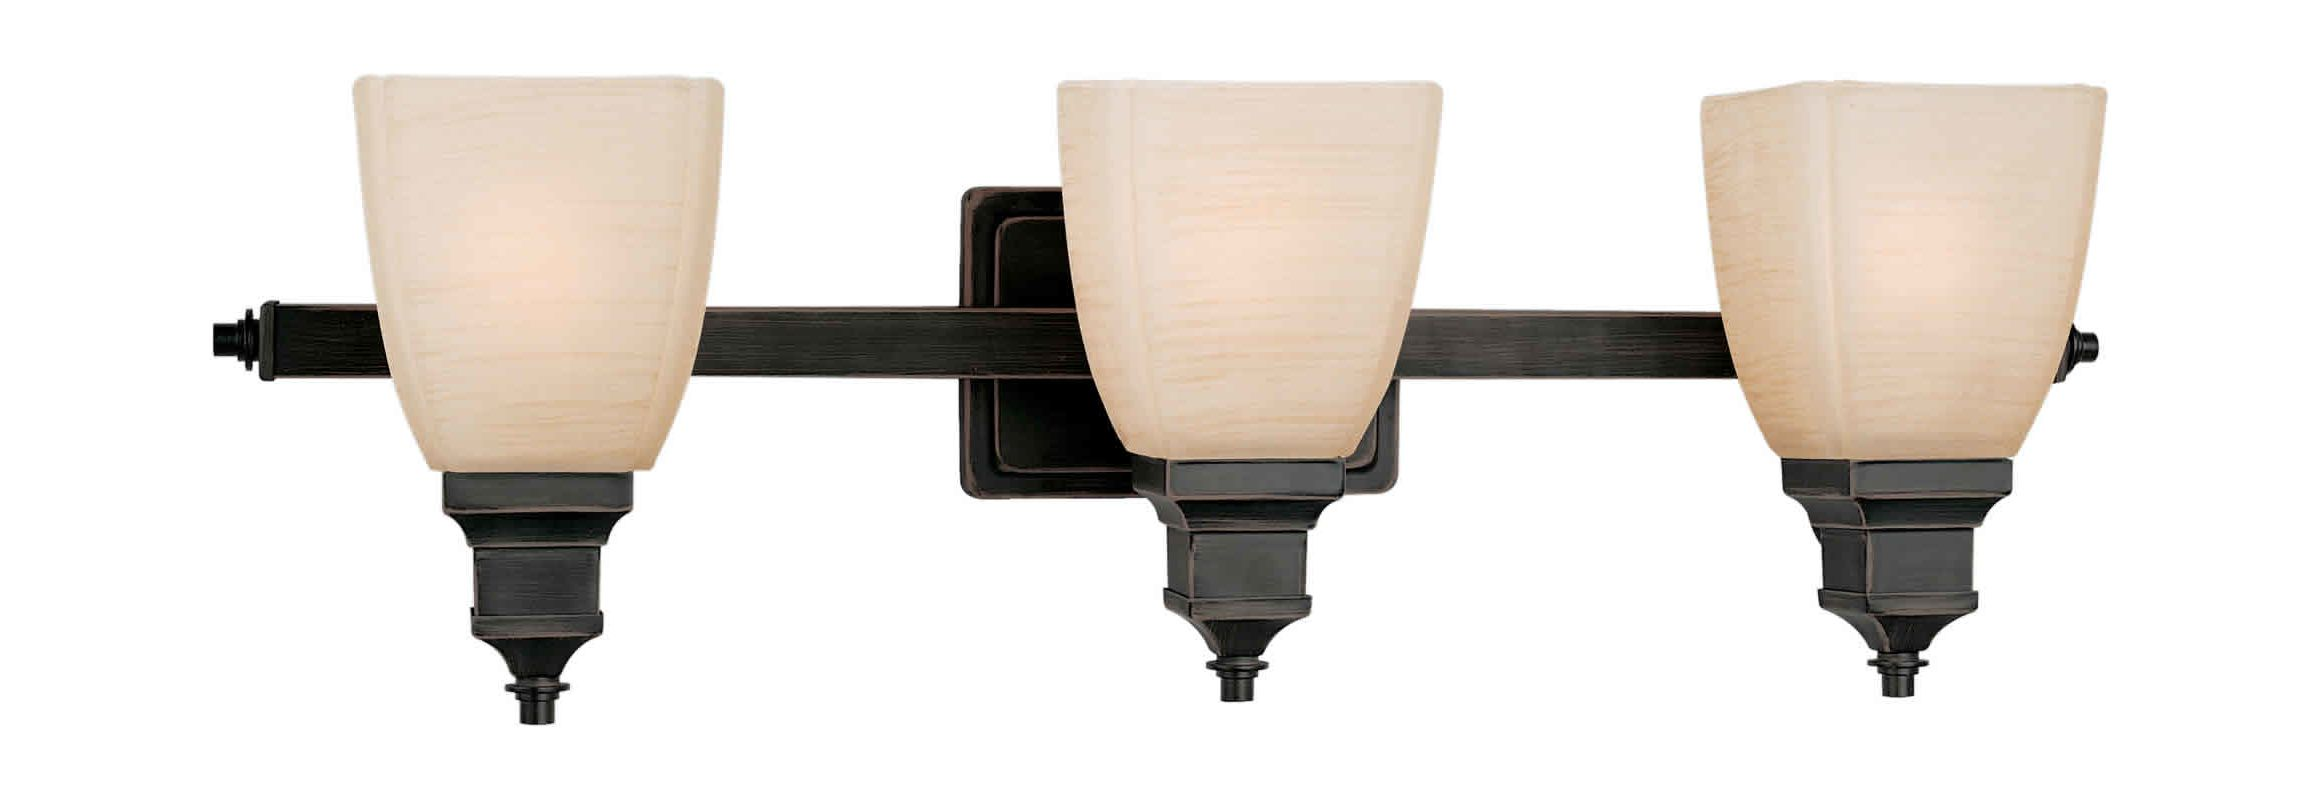 "Forte Lighting 5057-03 3 Light 27.5"" Wide Bathroom Fixture Bordeaux"